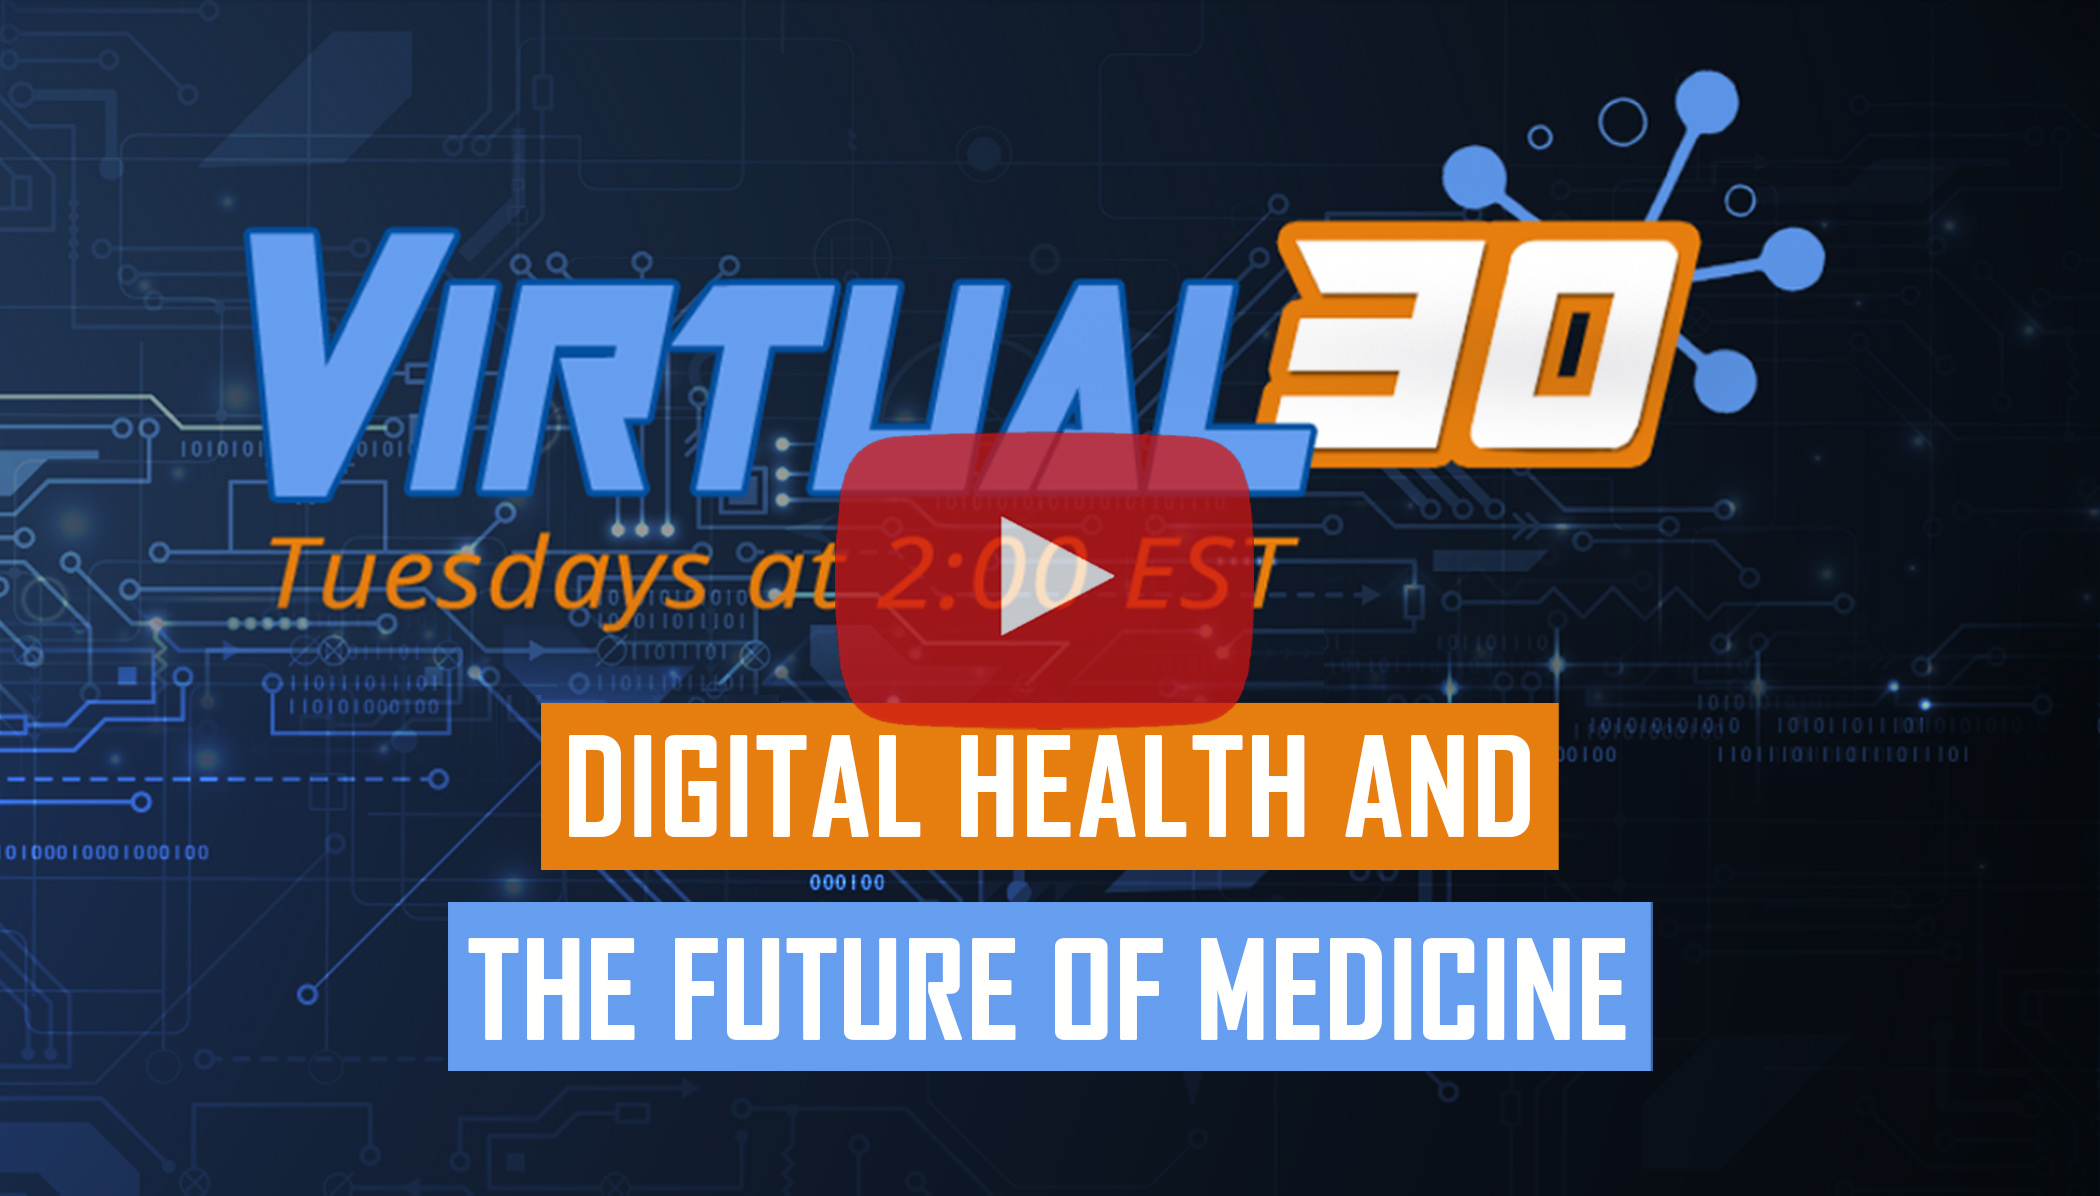 Webinar about digital disruption in the healthcare industry